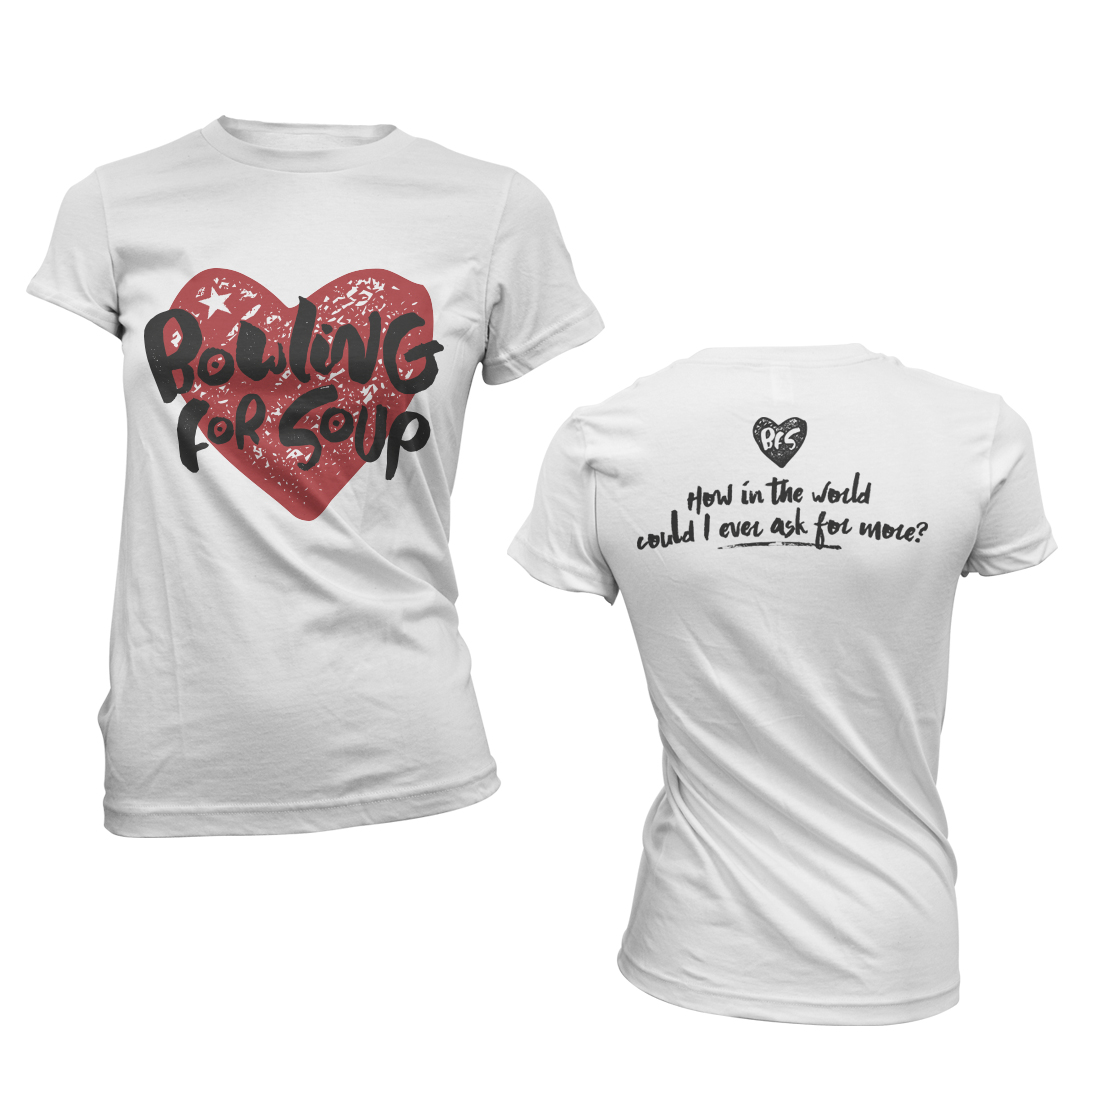 Heart – Girls Tee - Bowling For Soup